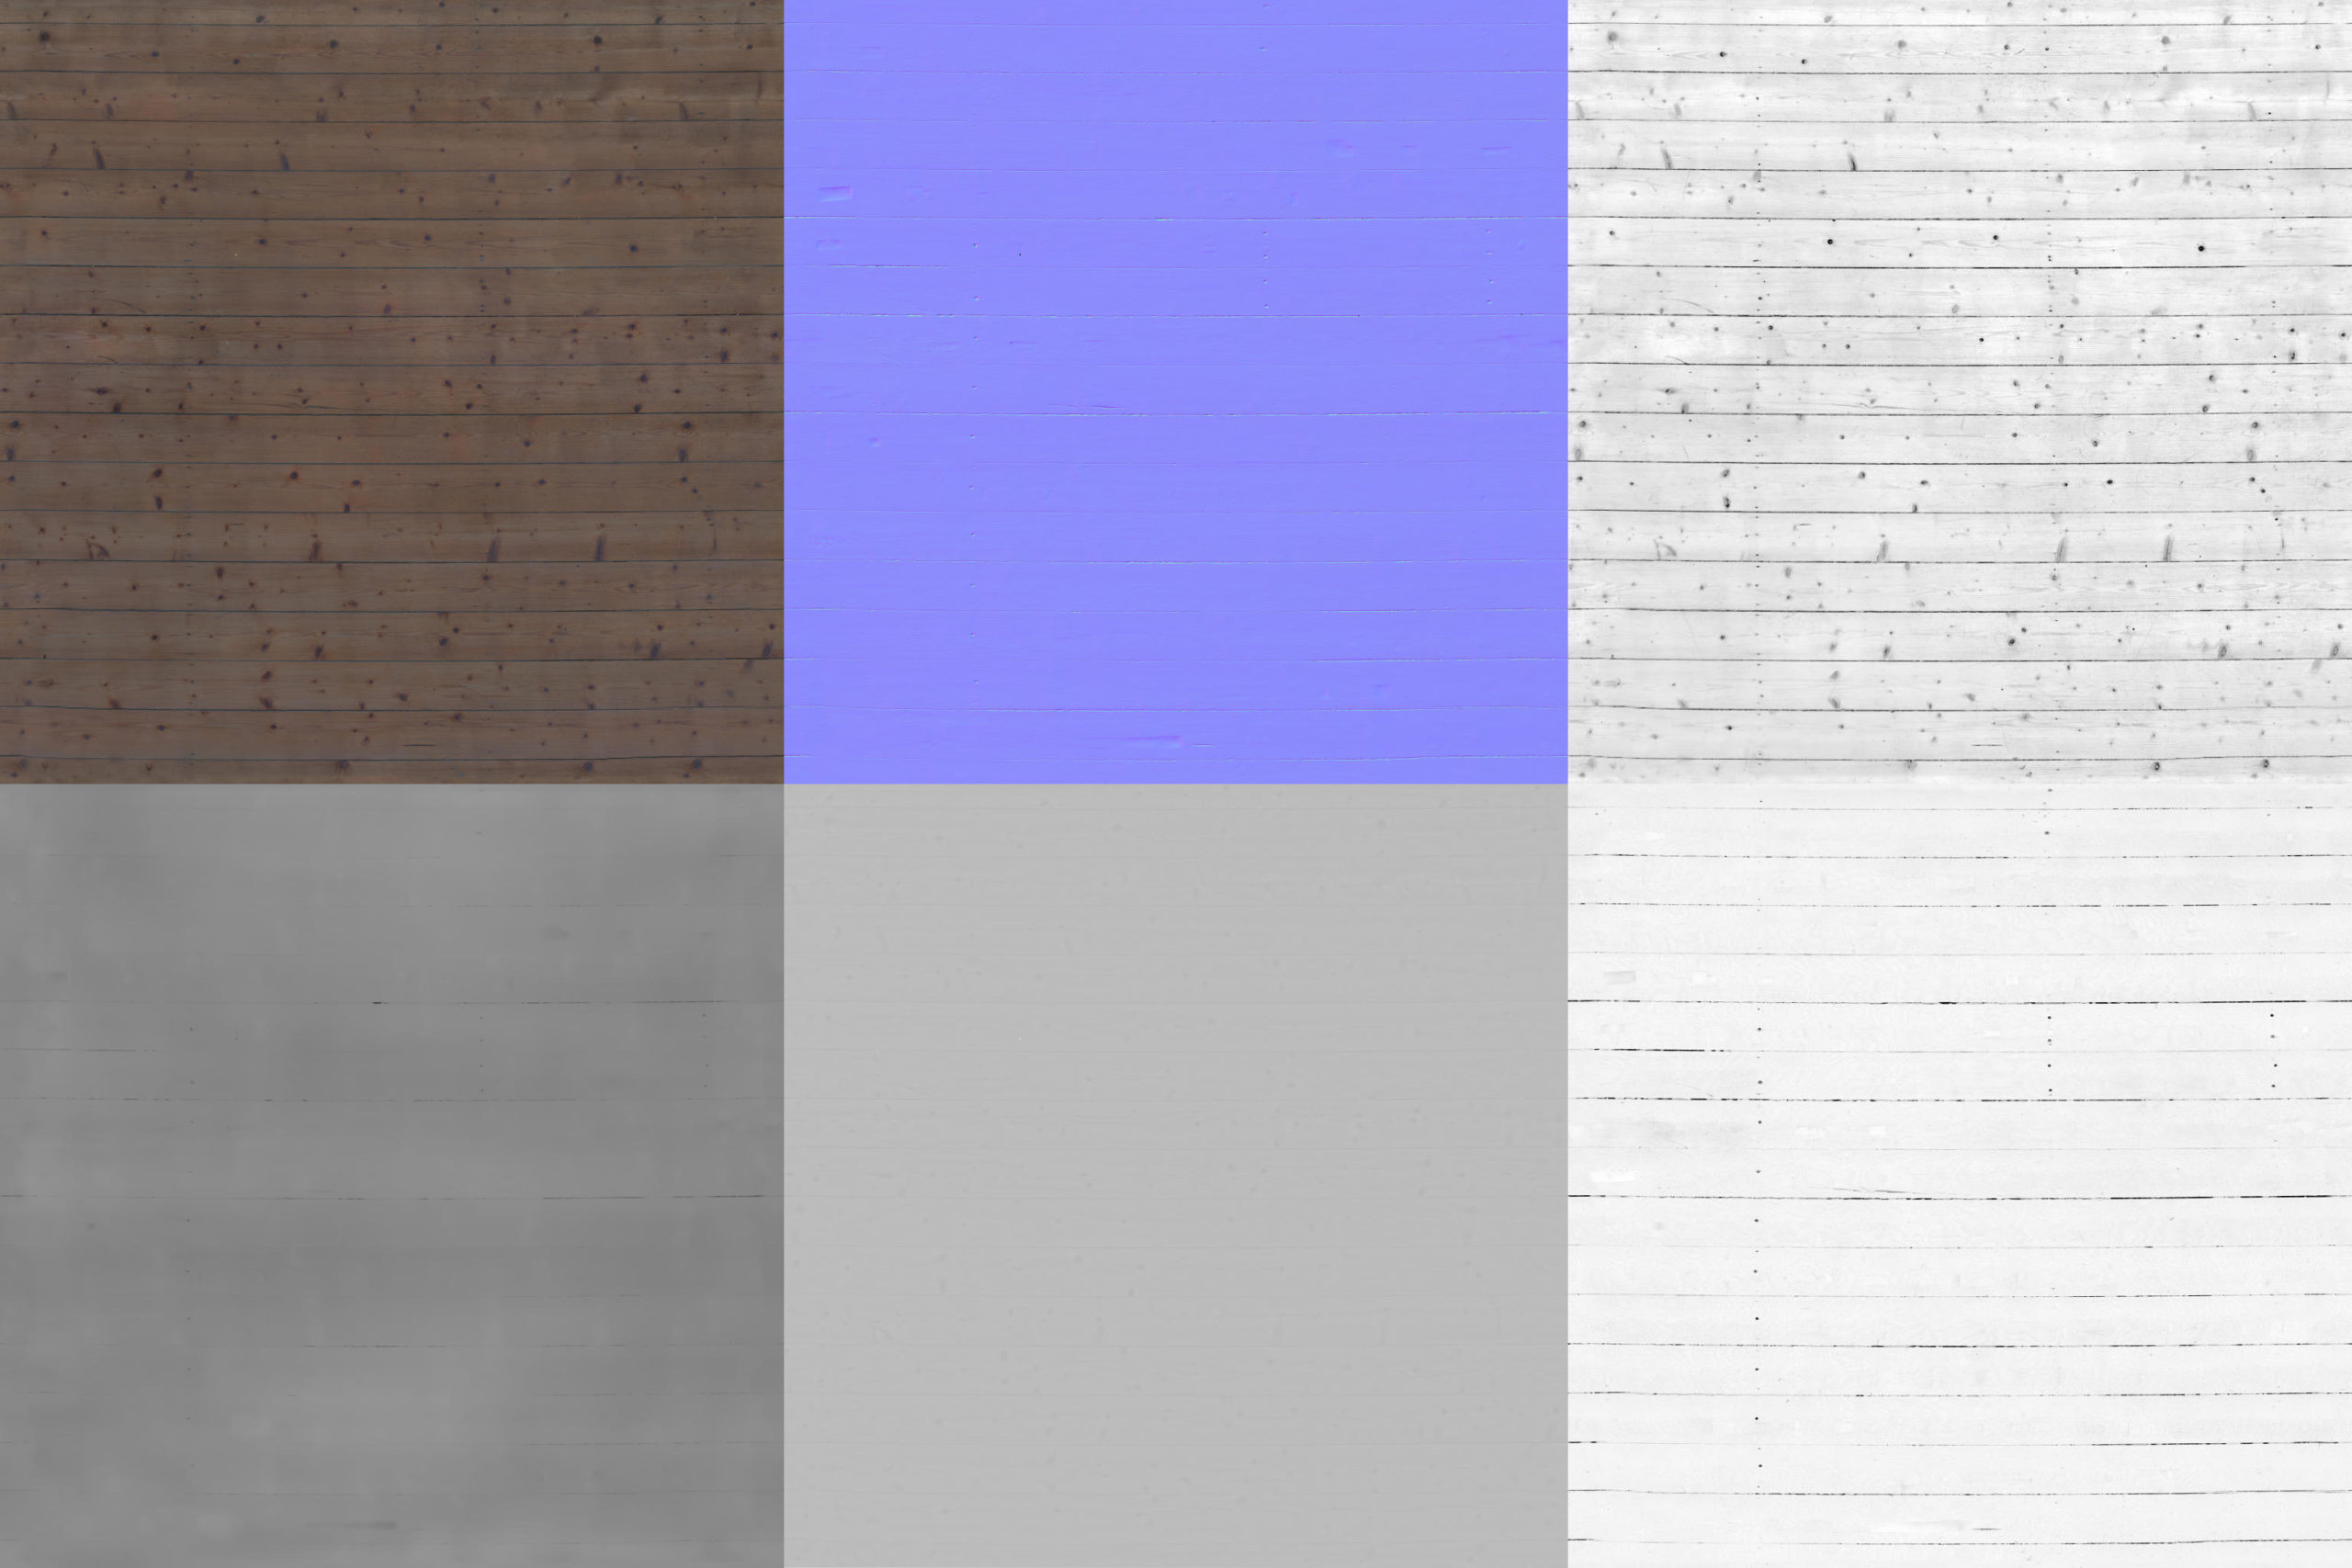 pbr textures of wood flooring